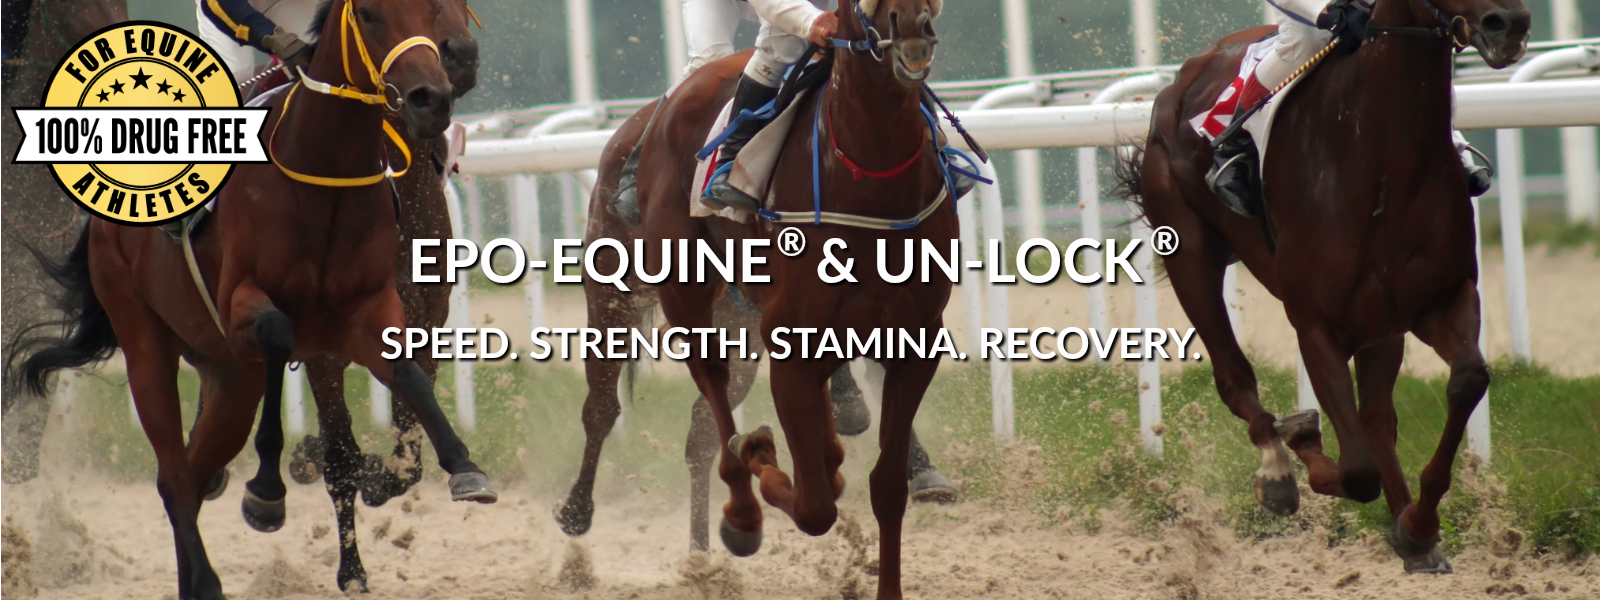 EPO-EQUINE and UN-LOCK horse supplements